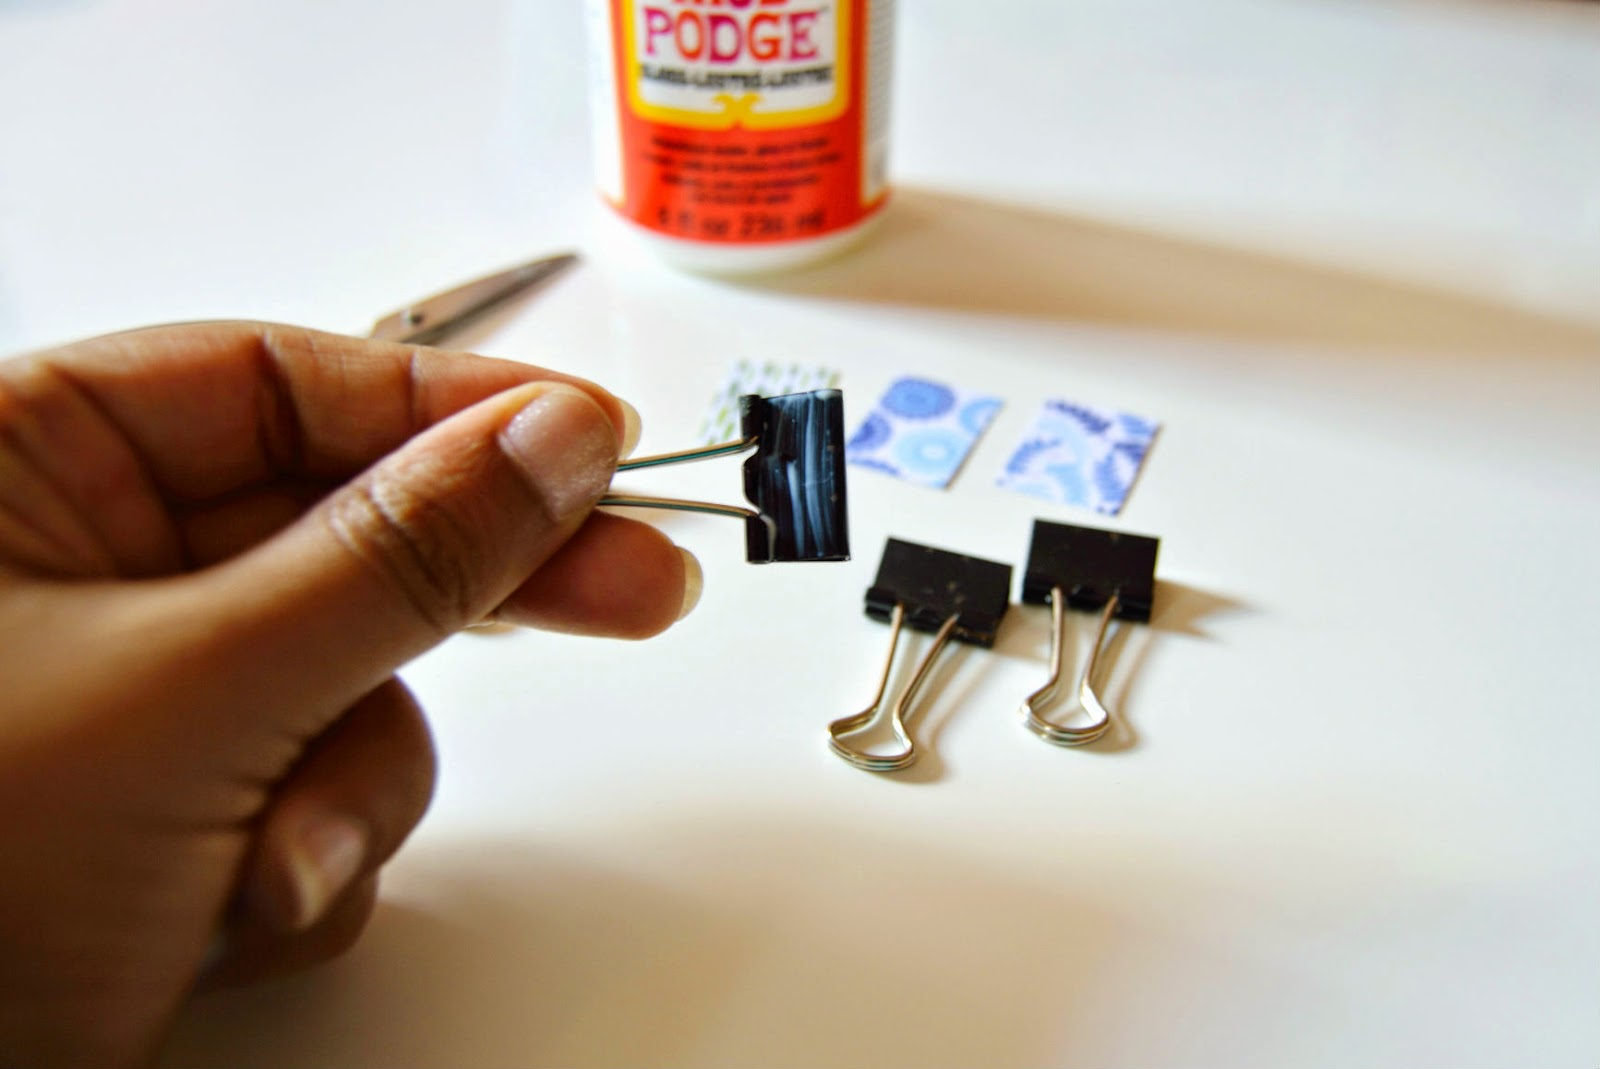 how to take out staples yourself